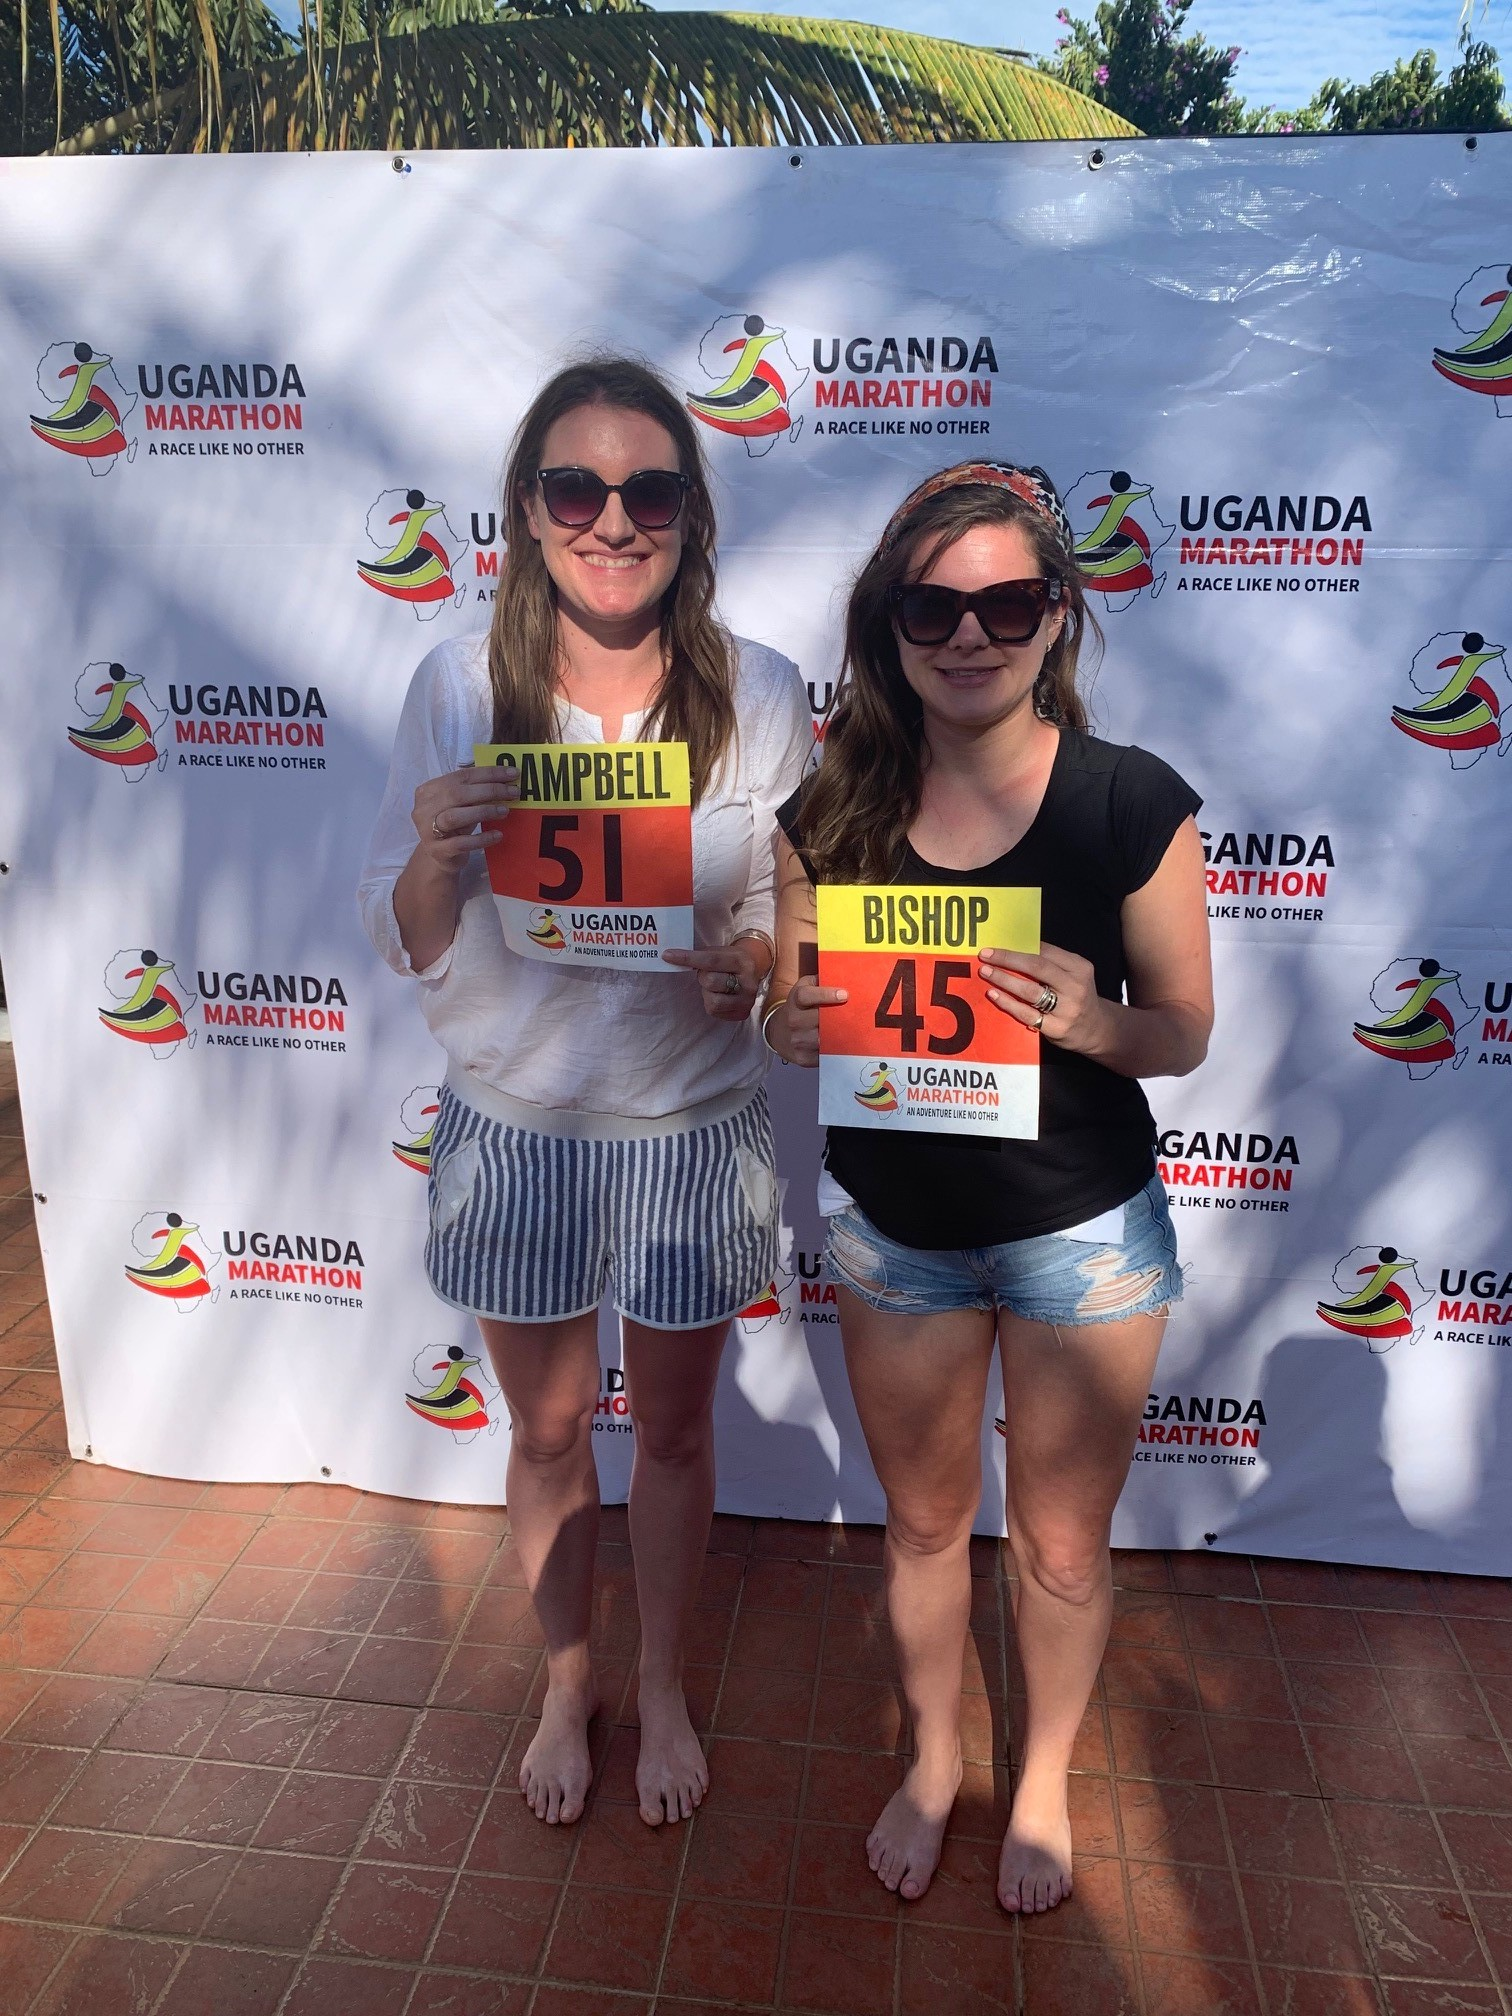 Interview with two UGM Runners – Rosie Campbell & Jessica Bishop